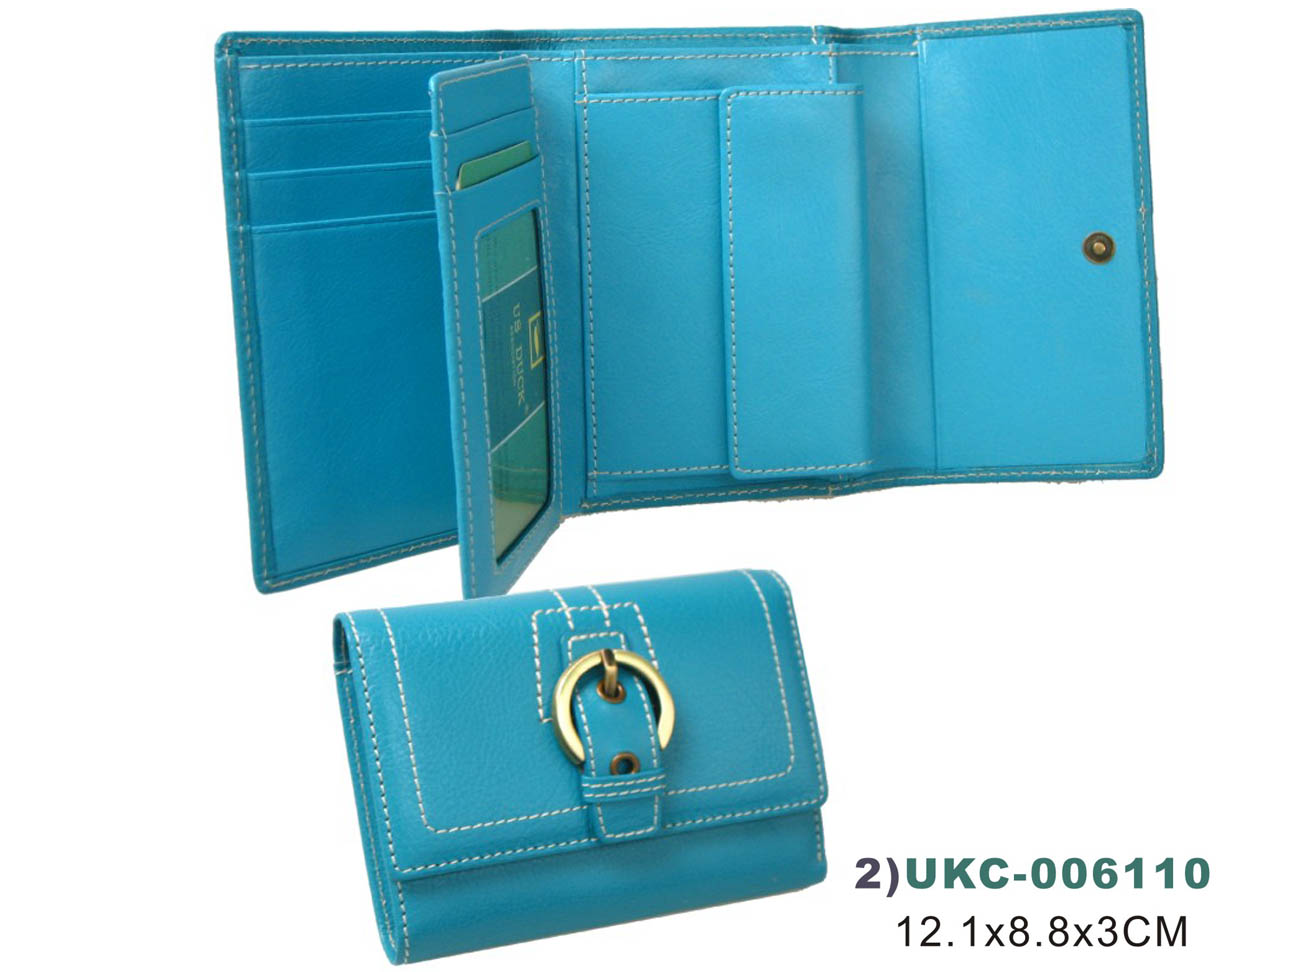 Female wallet UKC-006110